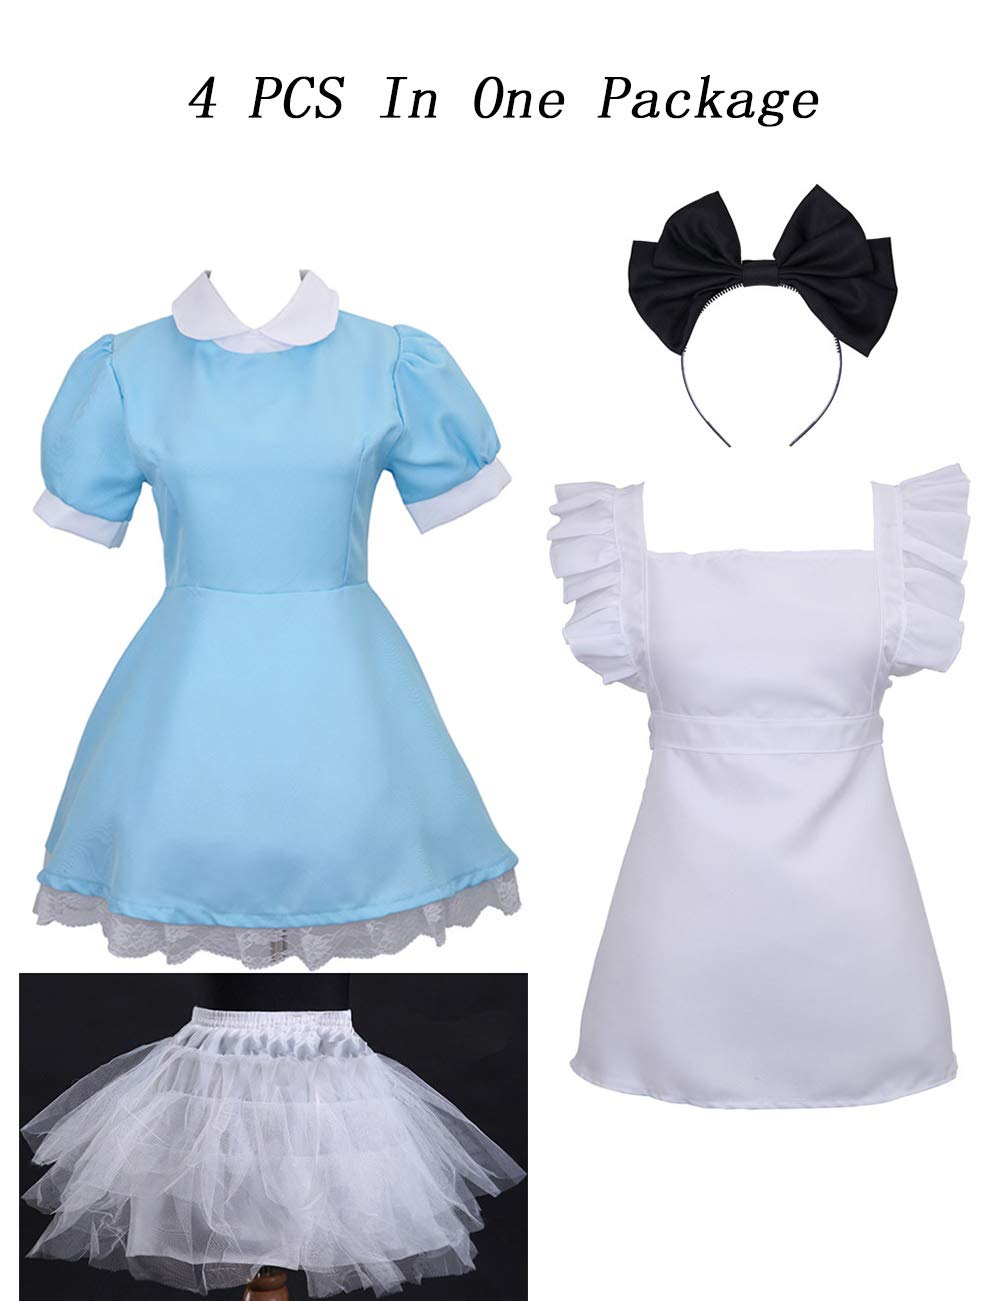 Colorful House Women's Cosplay Outfit Blue Dress Maid Fancy Dress Costume (Medium, Blue (with Petticoat)) by Colorful House (Image #2)